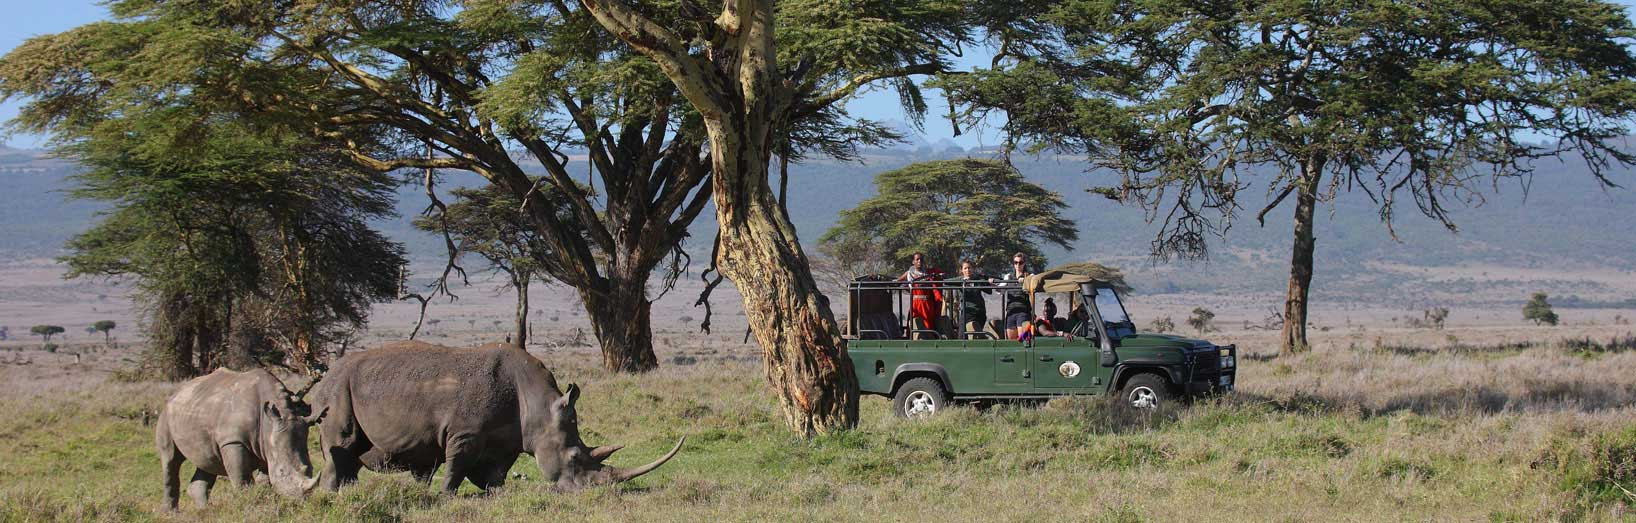 Luxury safaris in Kenya.jpg